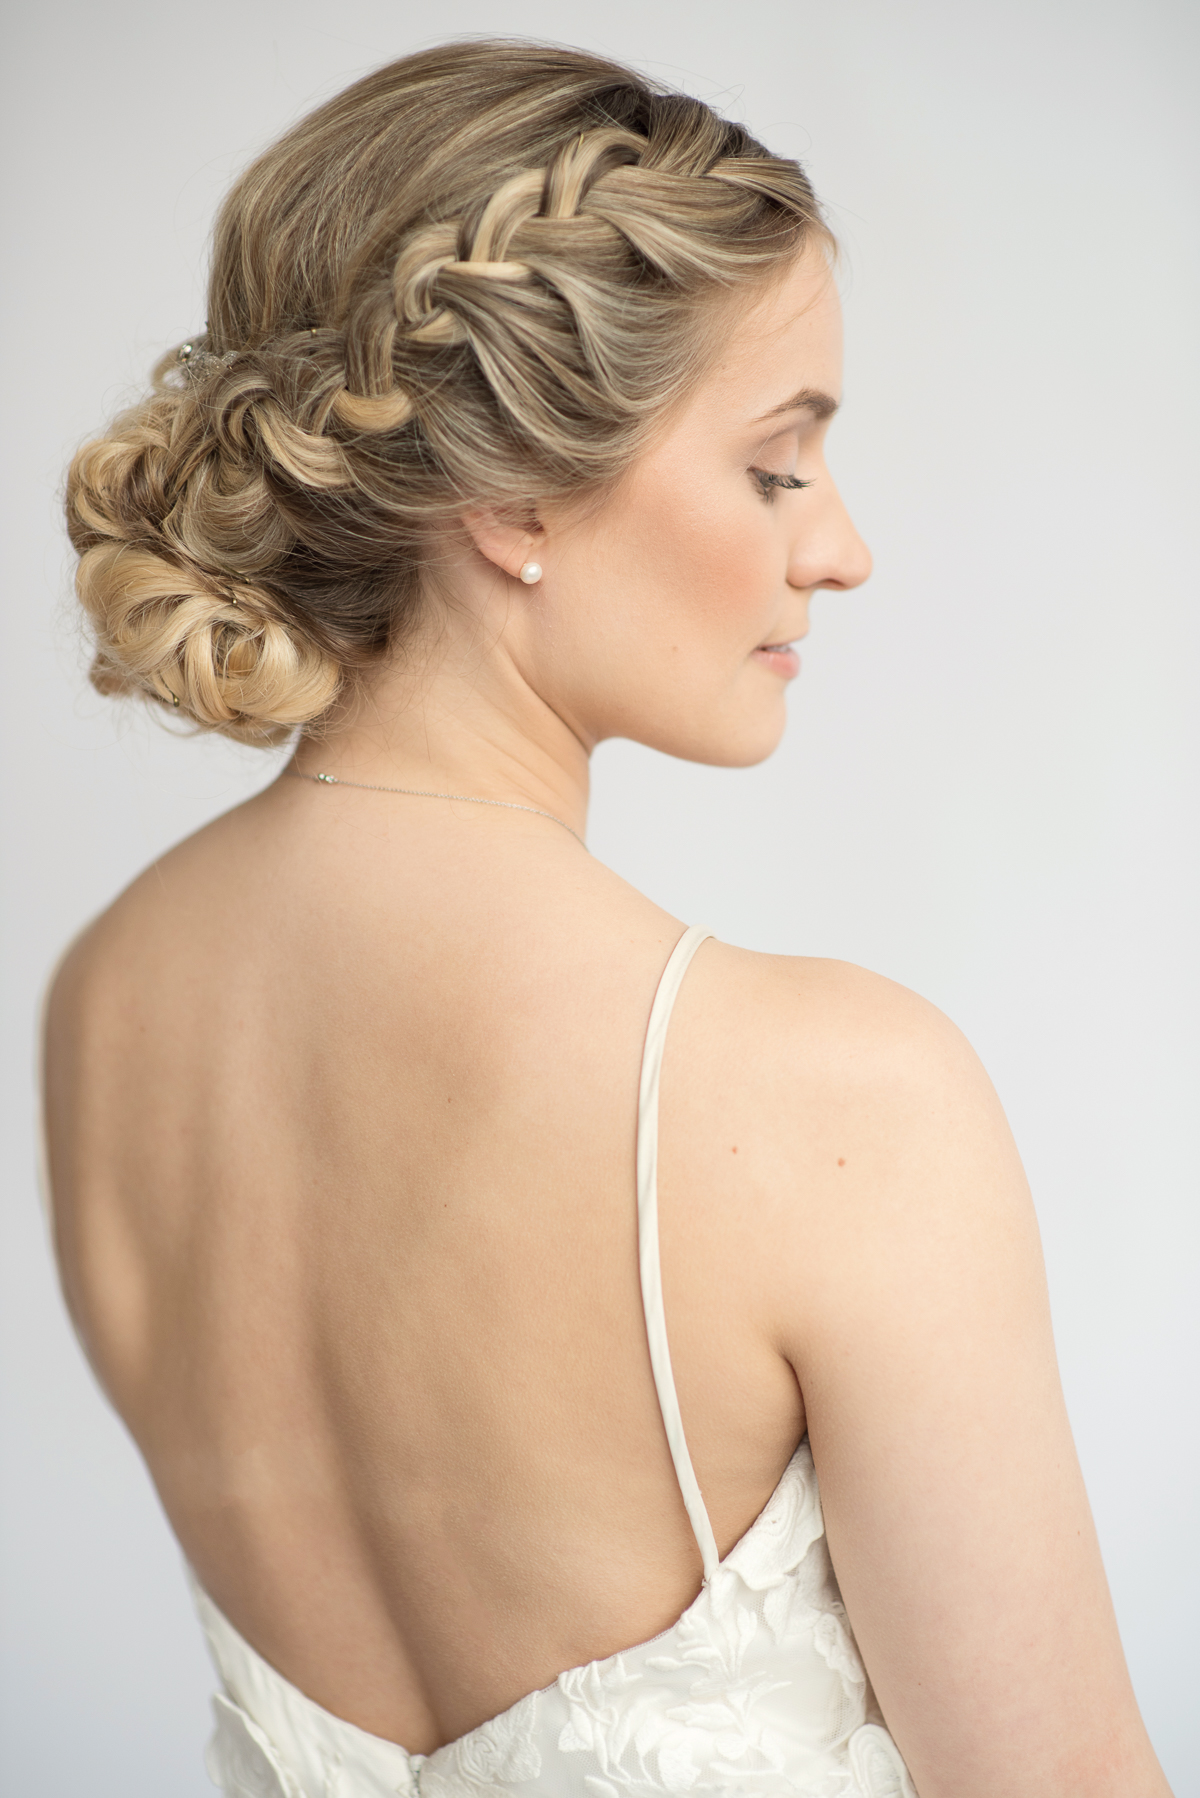 Elegant-wedding-side-braid-hairstyle